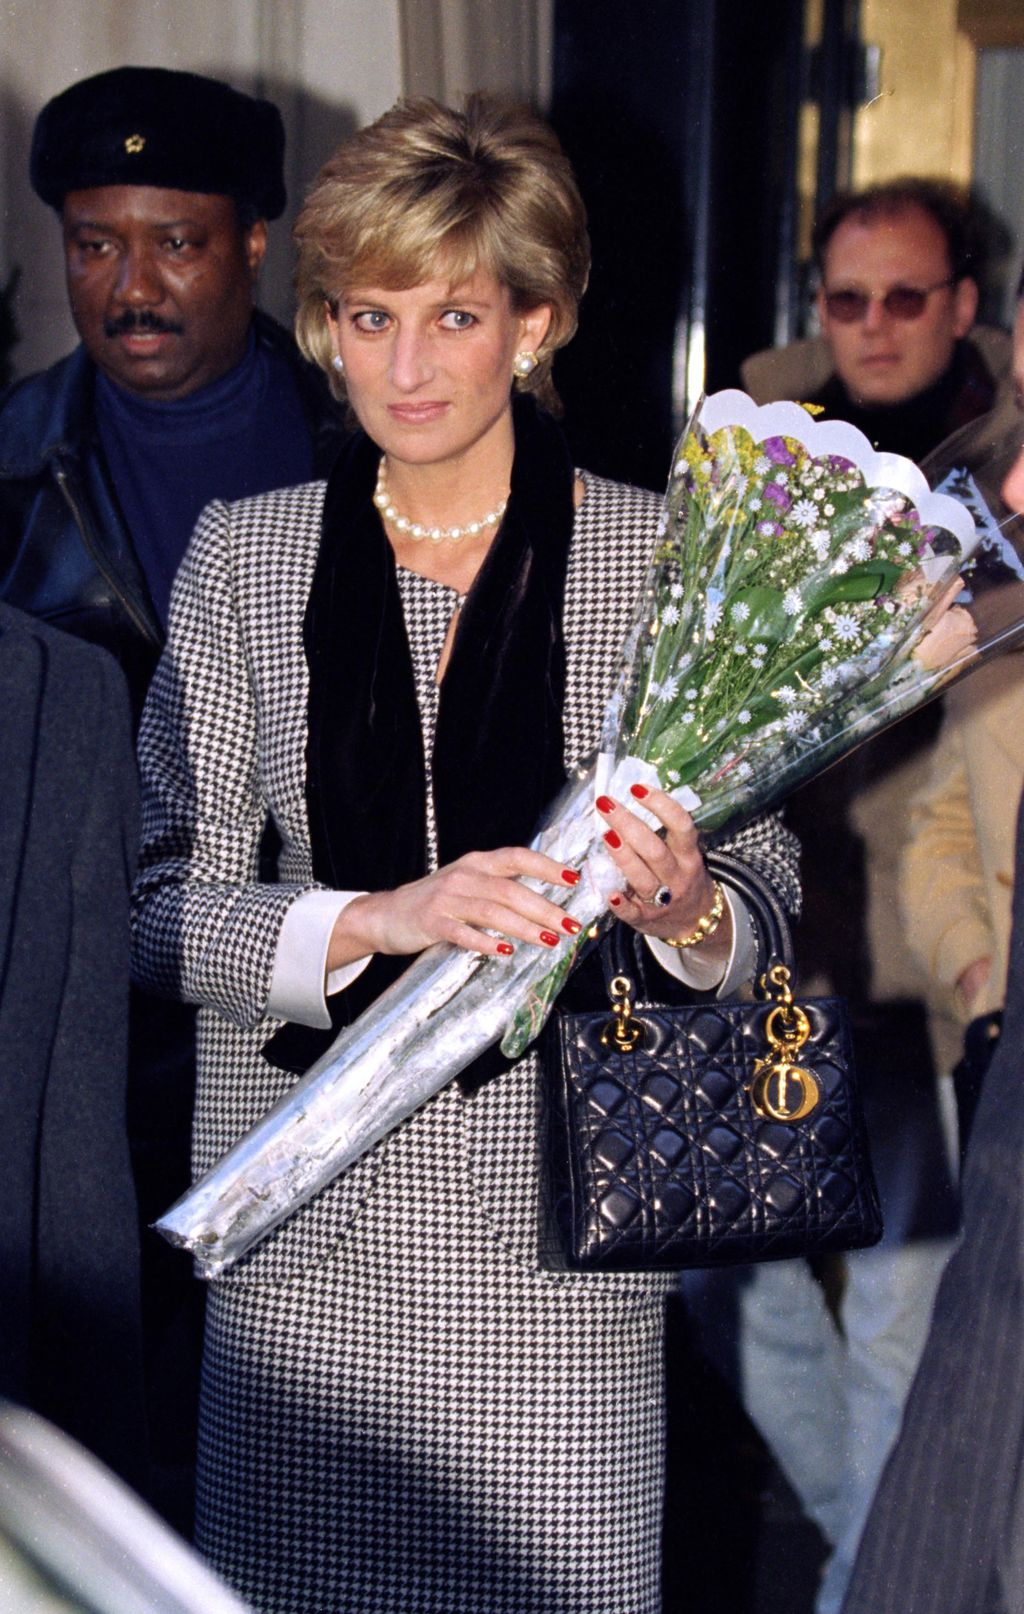 Diana, The Princess Of Wales In New York. (Photo by Antony Jones/UK Press via Getty Images)